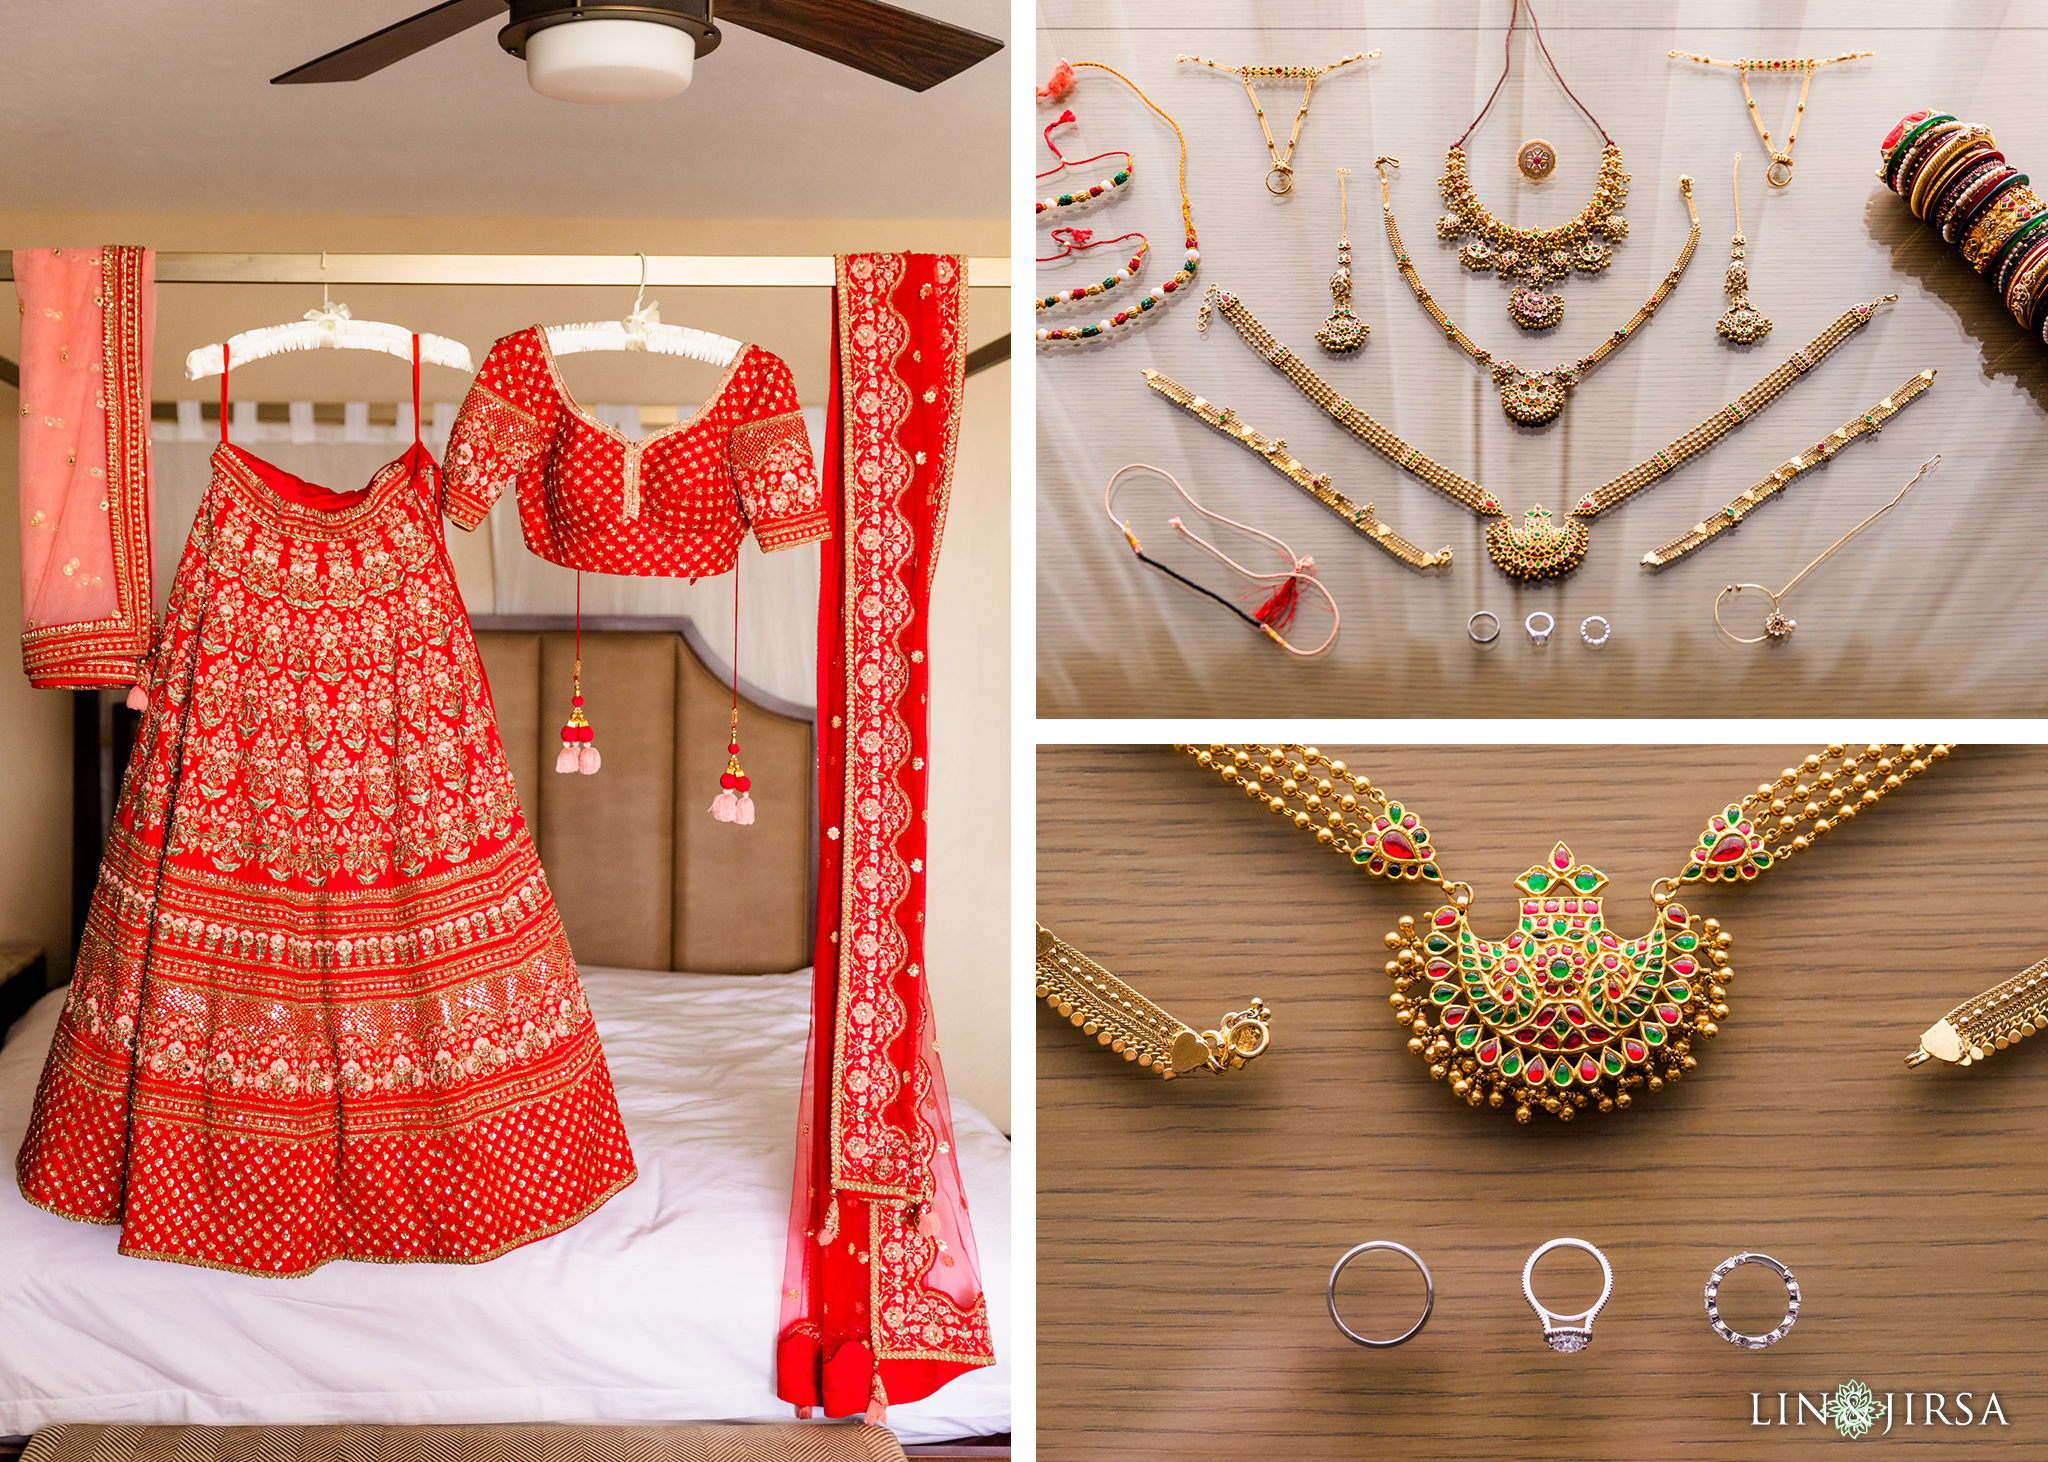 zjl Ritz Carlton Bacara Santa Barbara Indian Wedding Photography